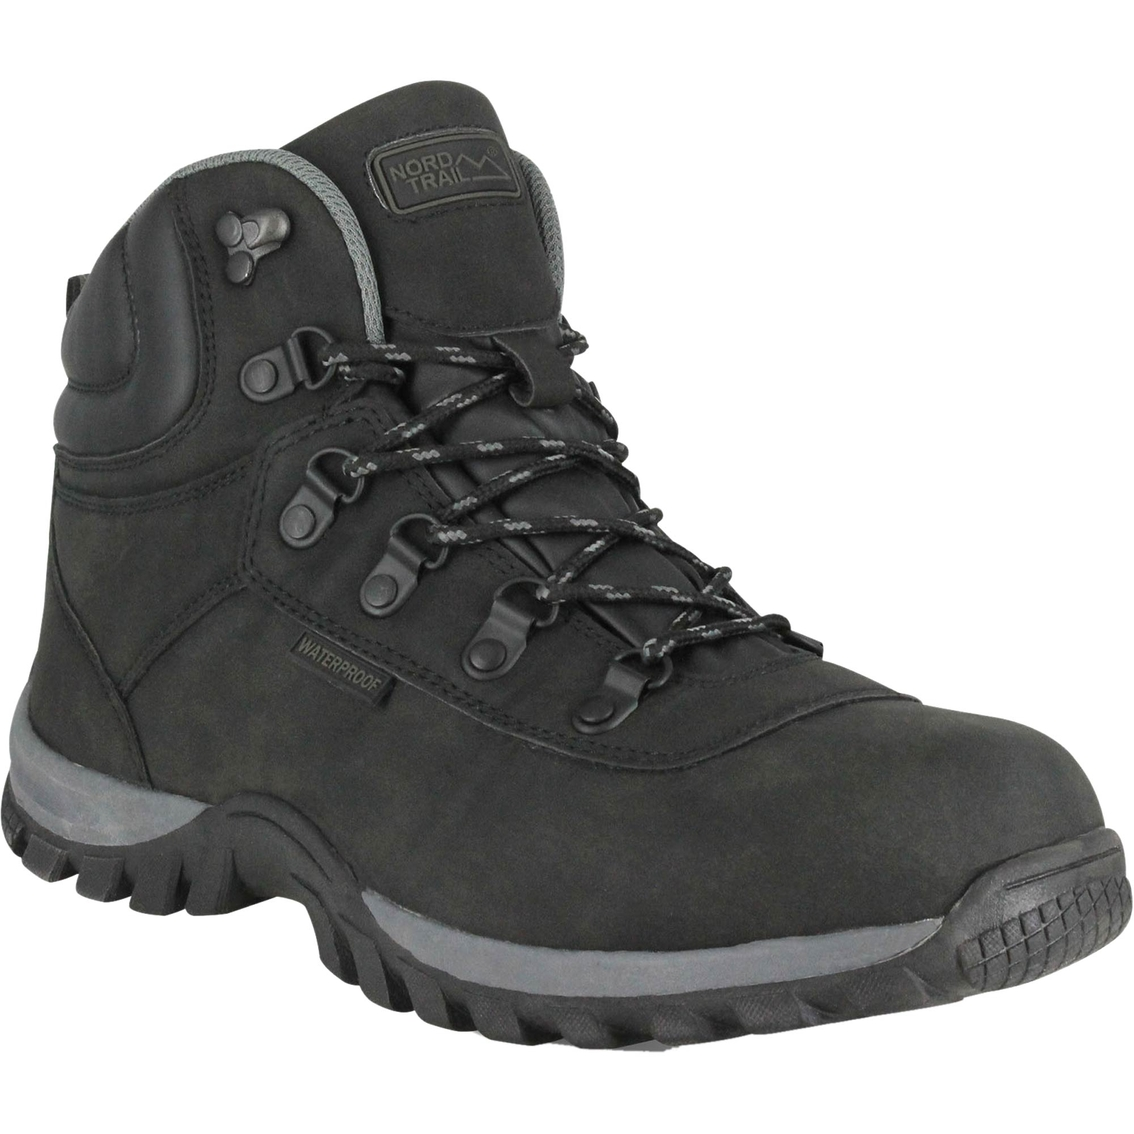 Nord Trail Edge High Men's ... Waterproof Hiking Boots cheap visa payment best wholesale for sale browse for sale popular cheap online excellent cheap price 1WcrtlLR